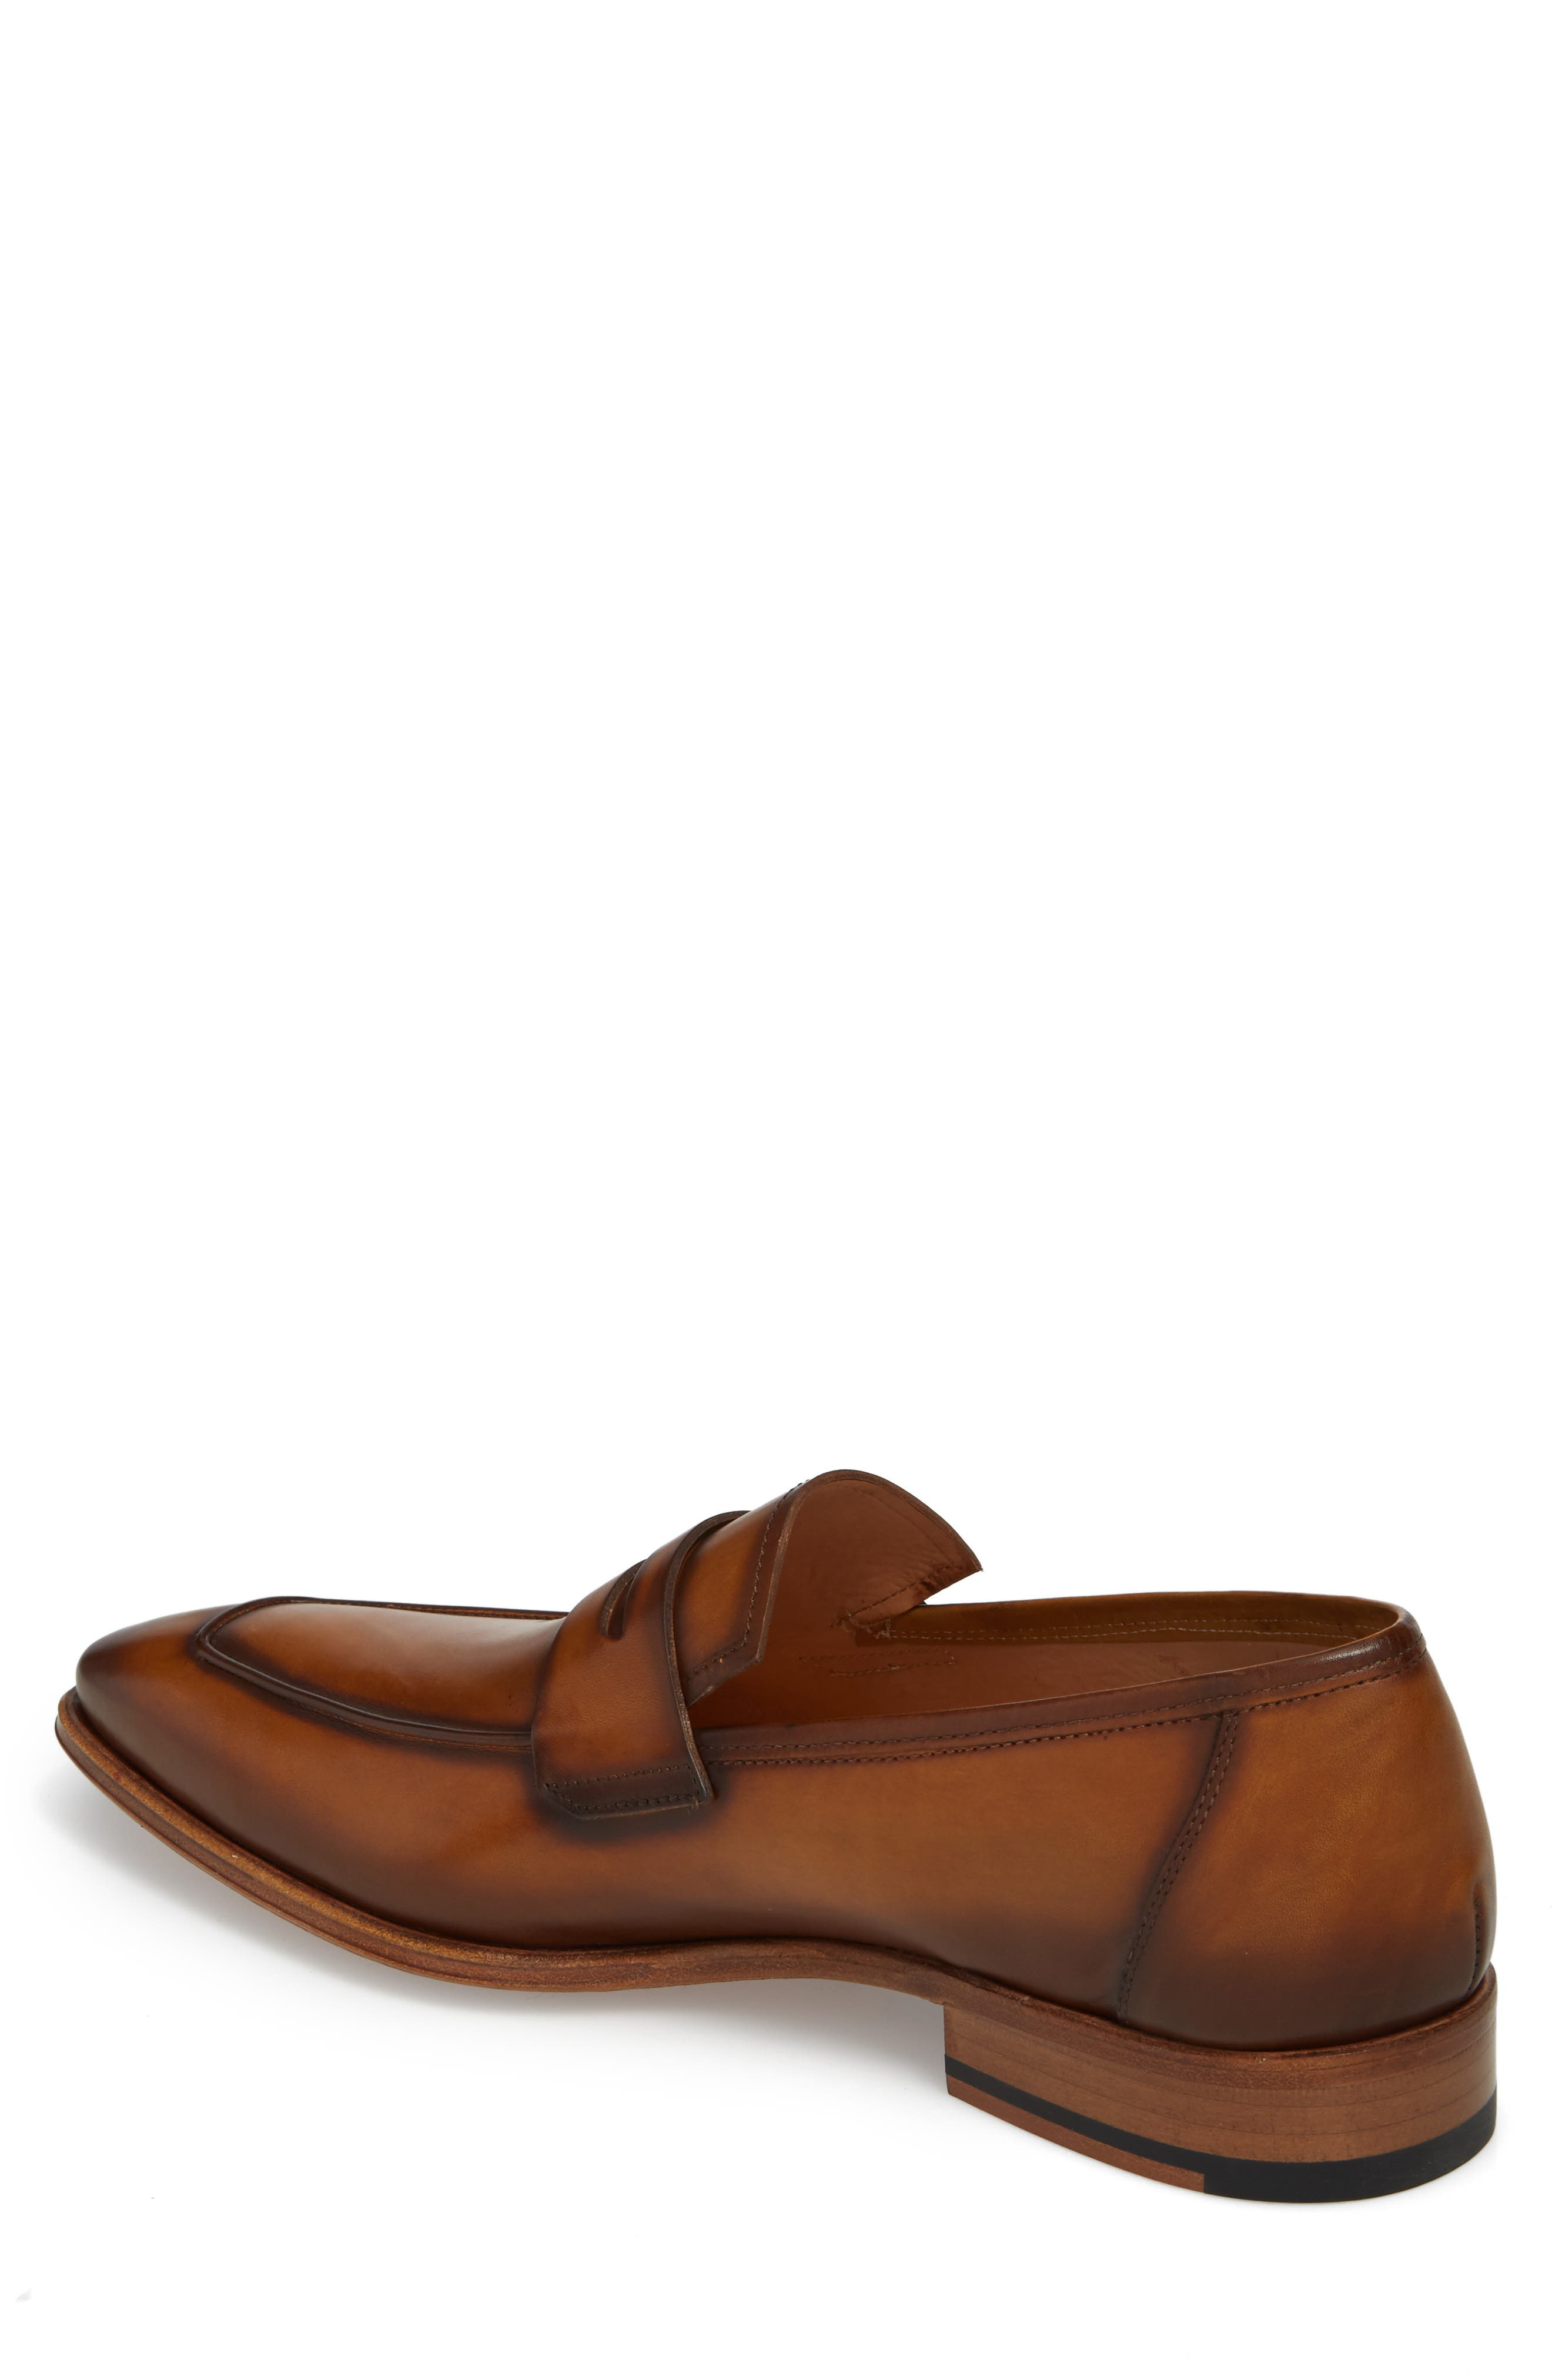 Marcus Penny Loafer,                             Alternate thumbnail 2, color,                             212